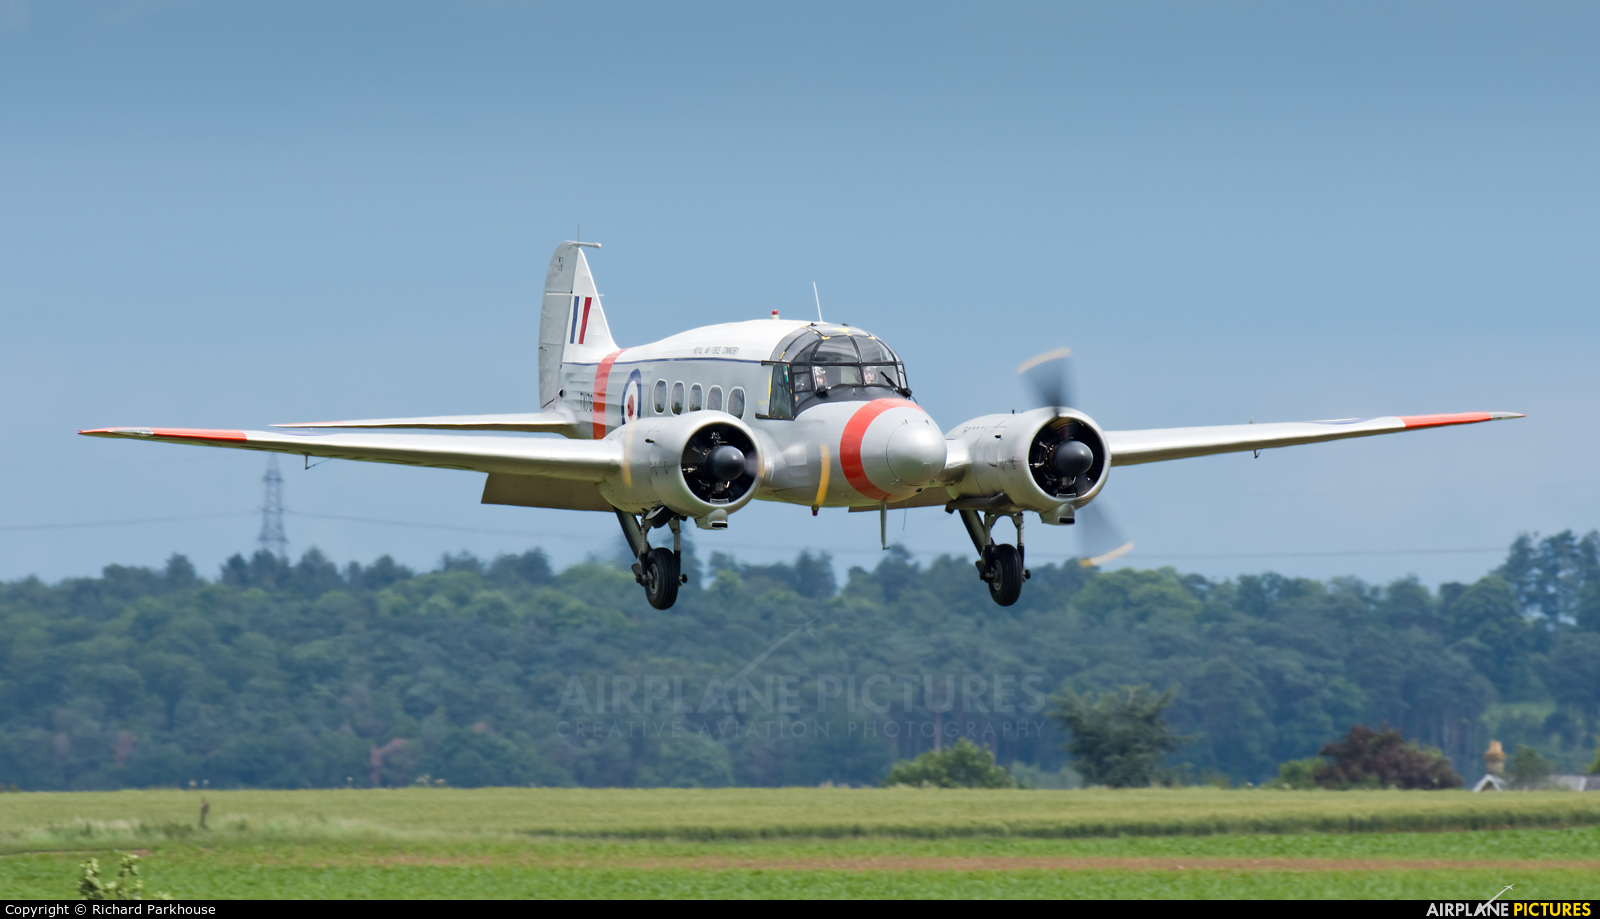 Bae Systems (Operations ) G-AHKX aircraft at Old Warden